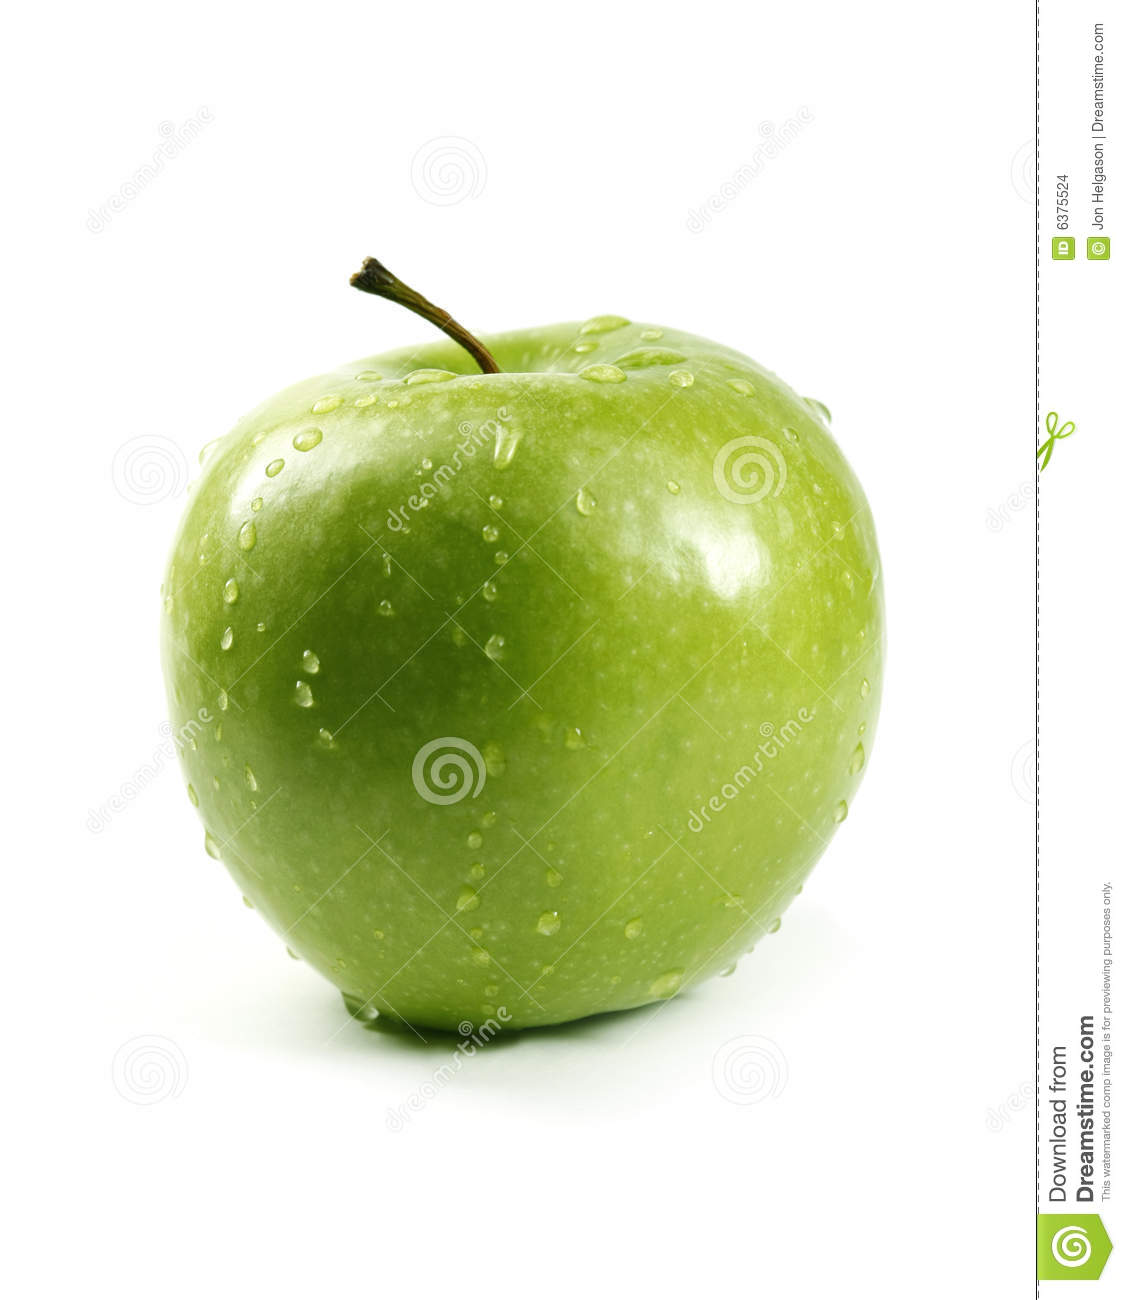 äpple - green